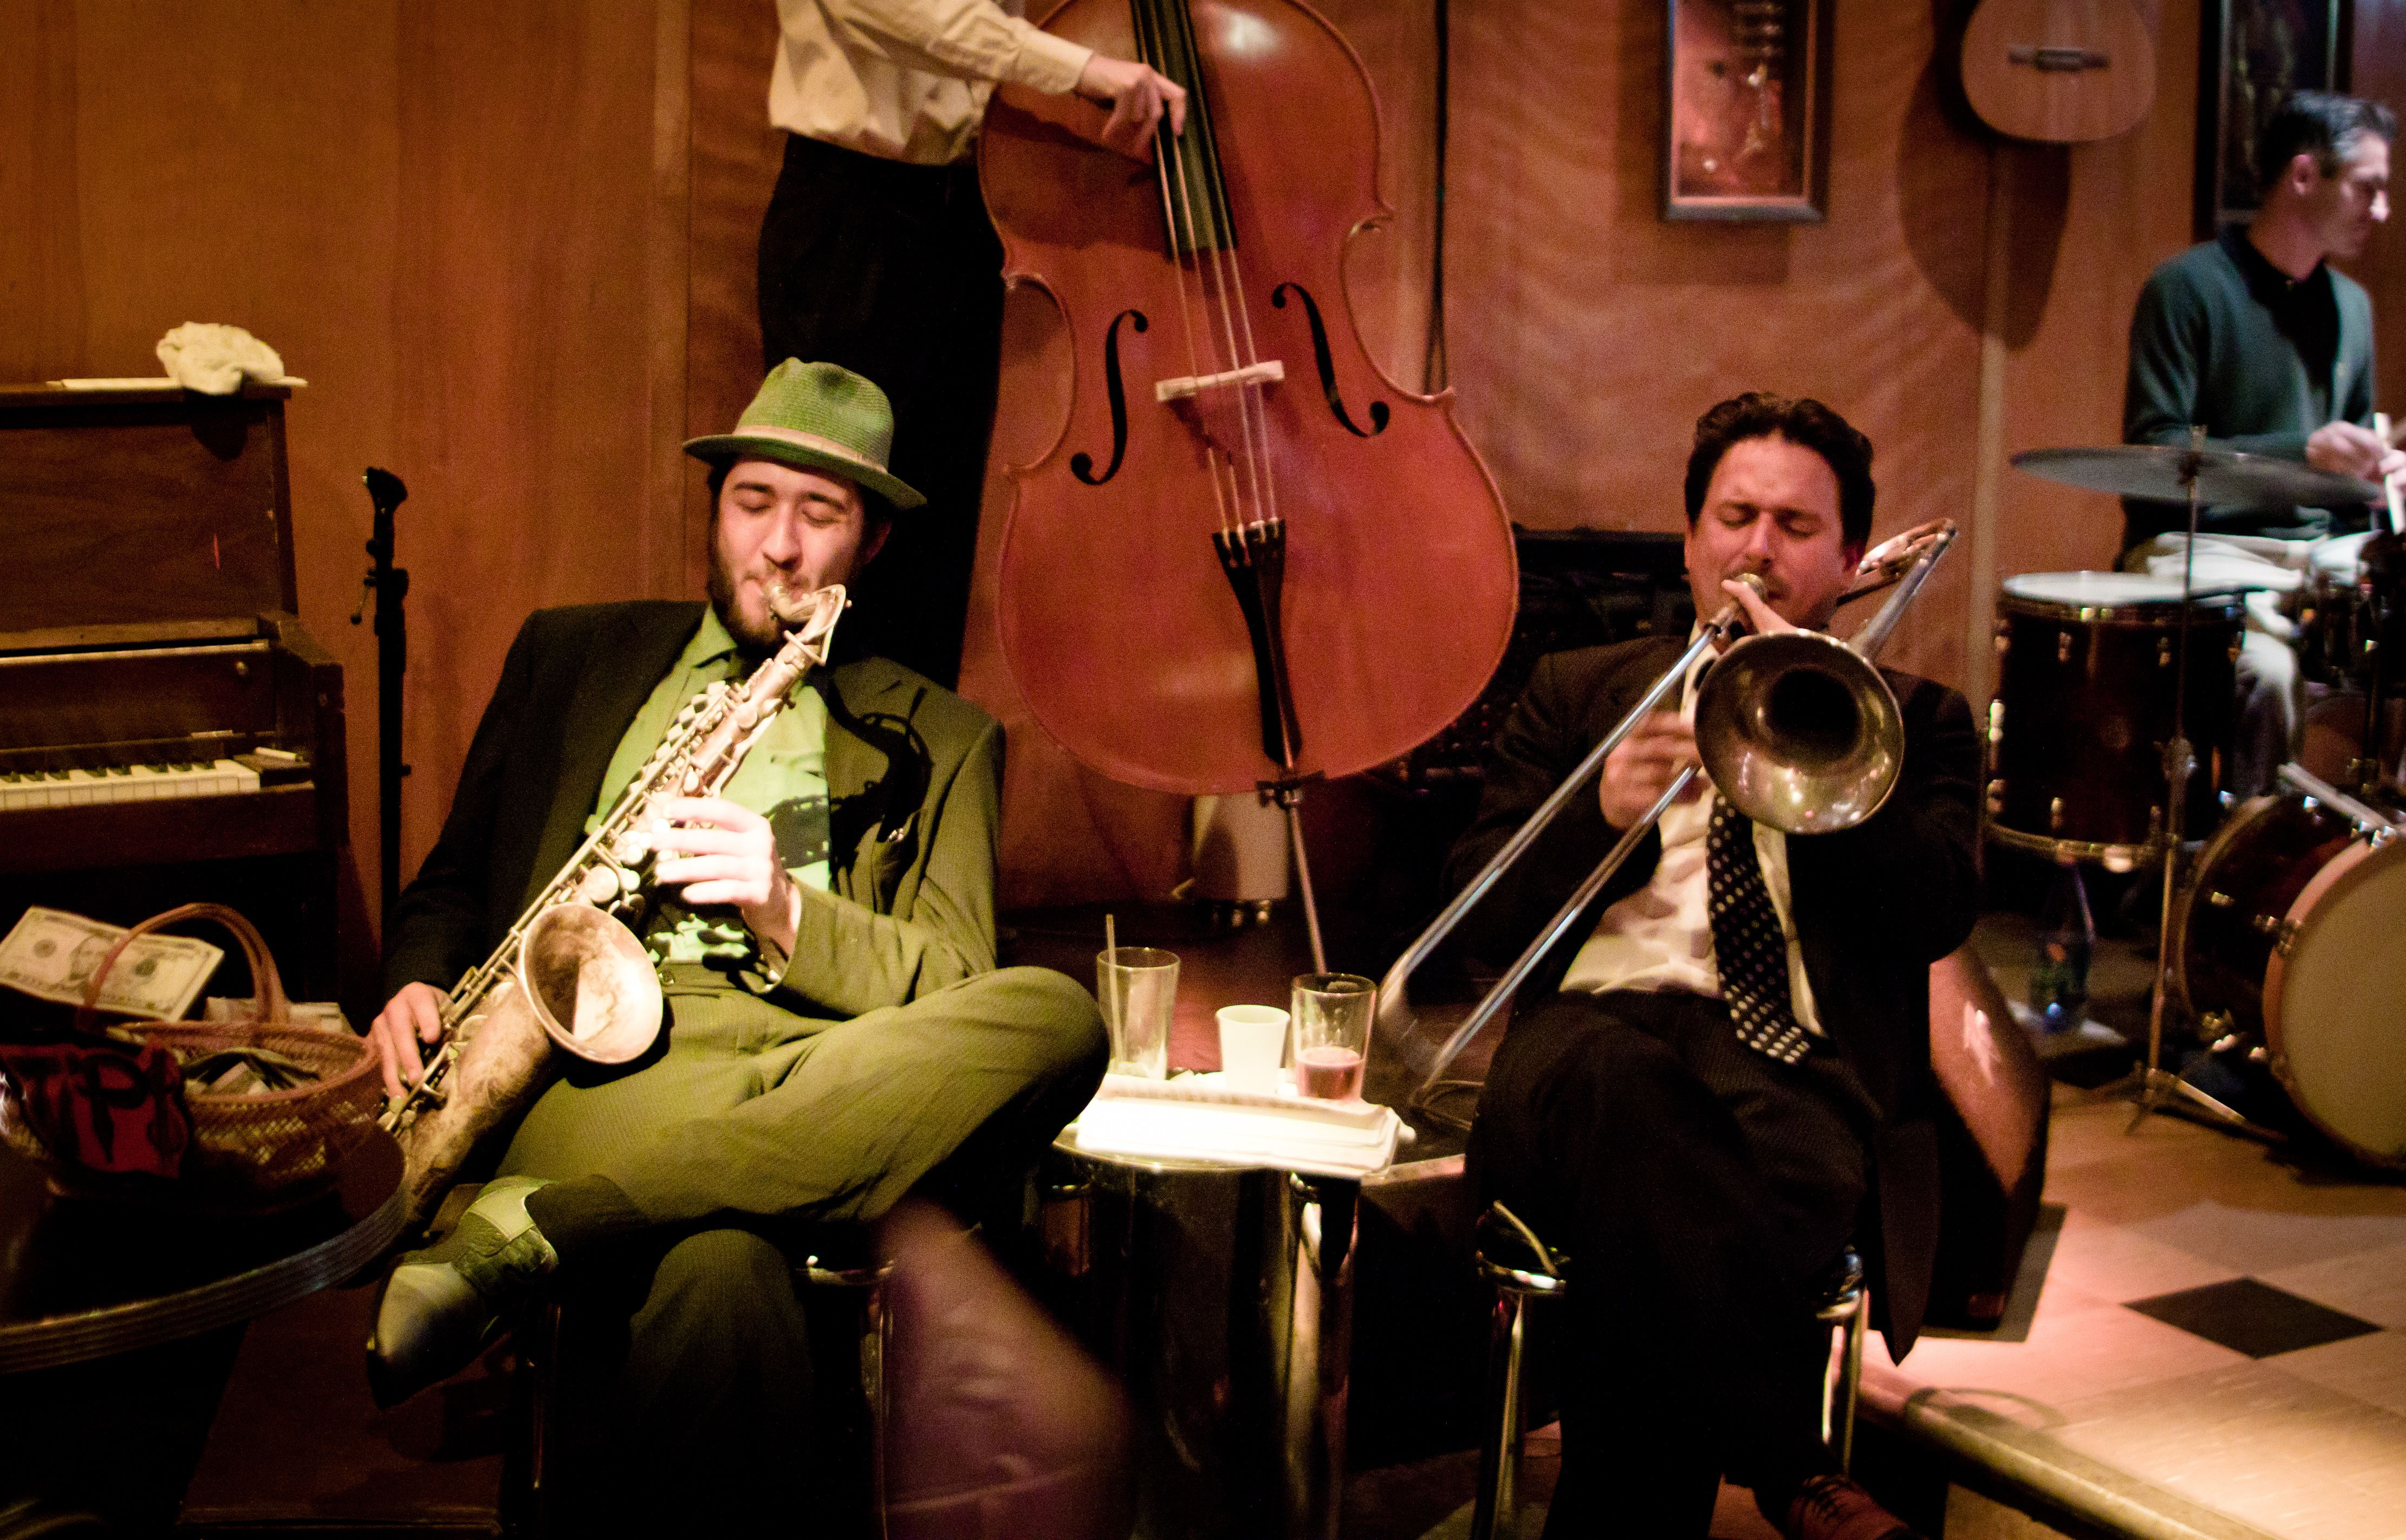 Jazz musicians at Club Deluxe, San Francisco